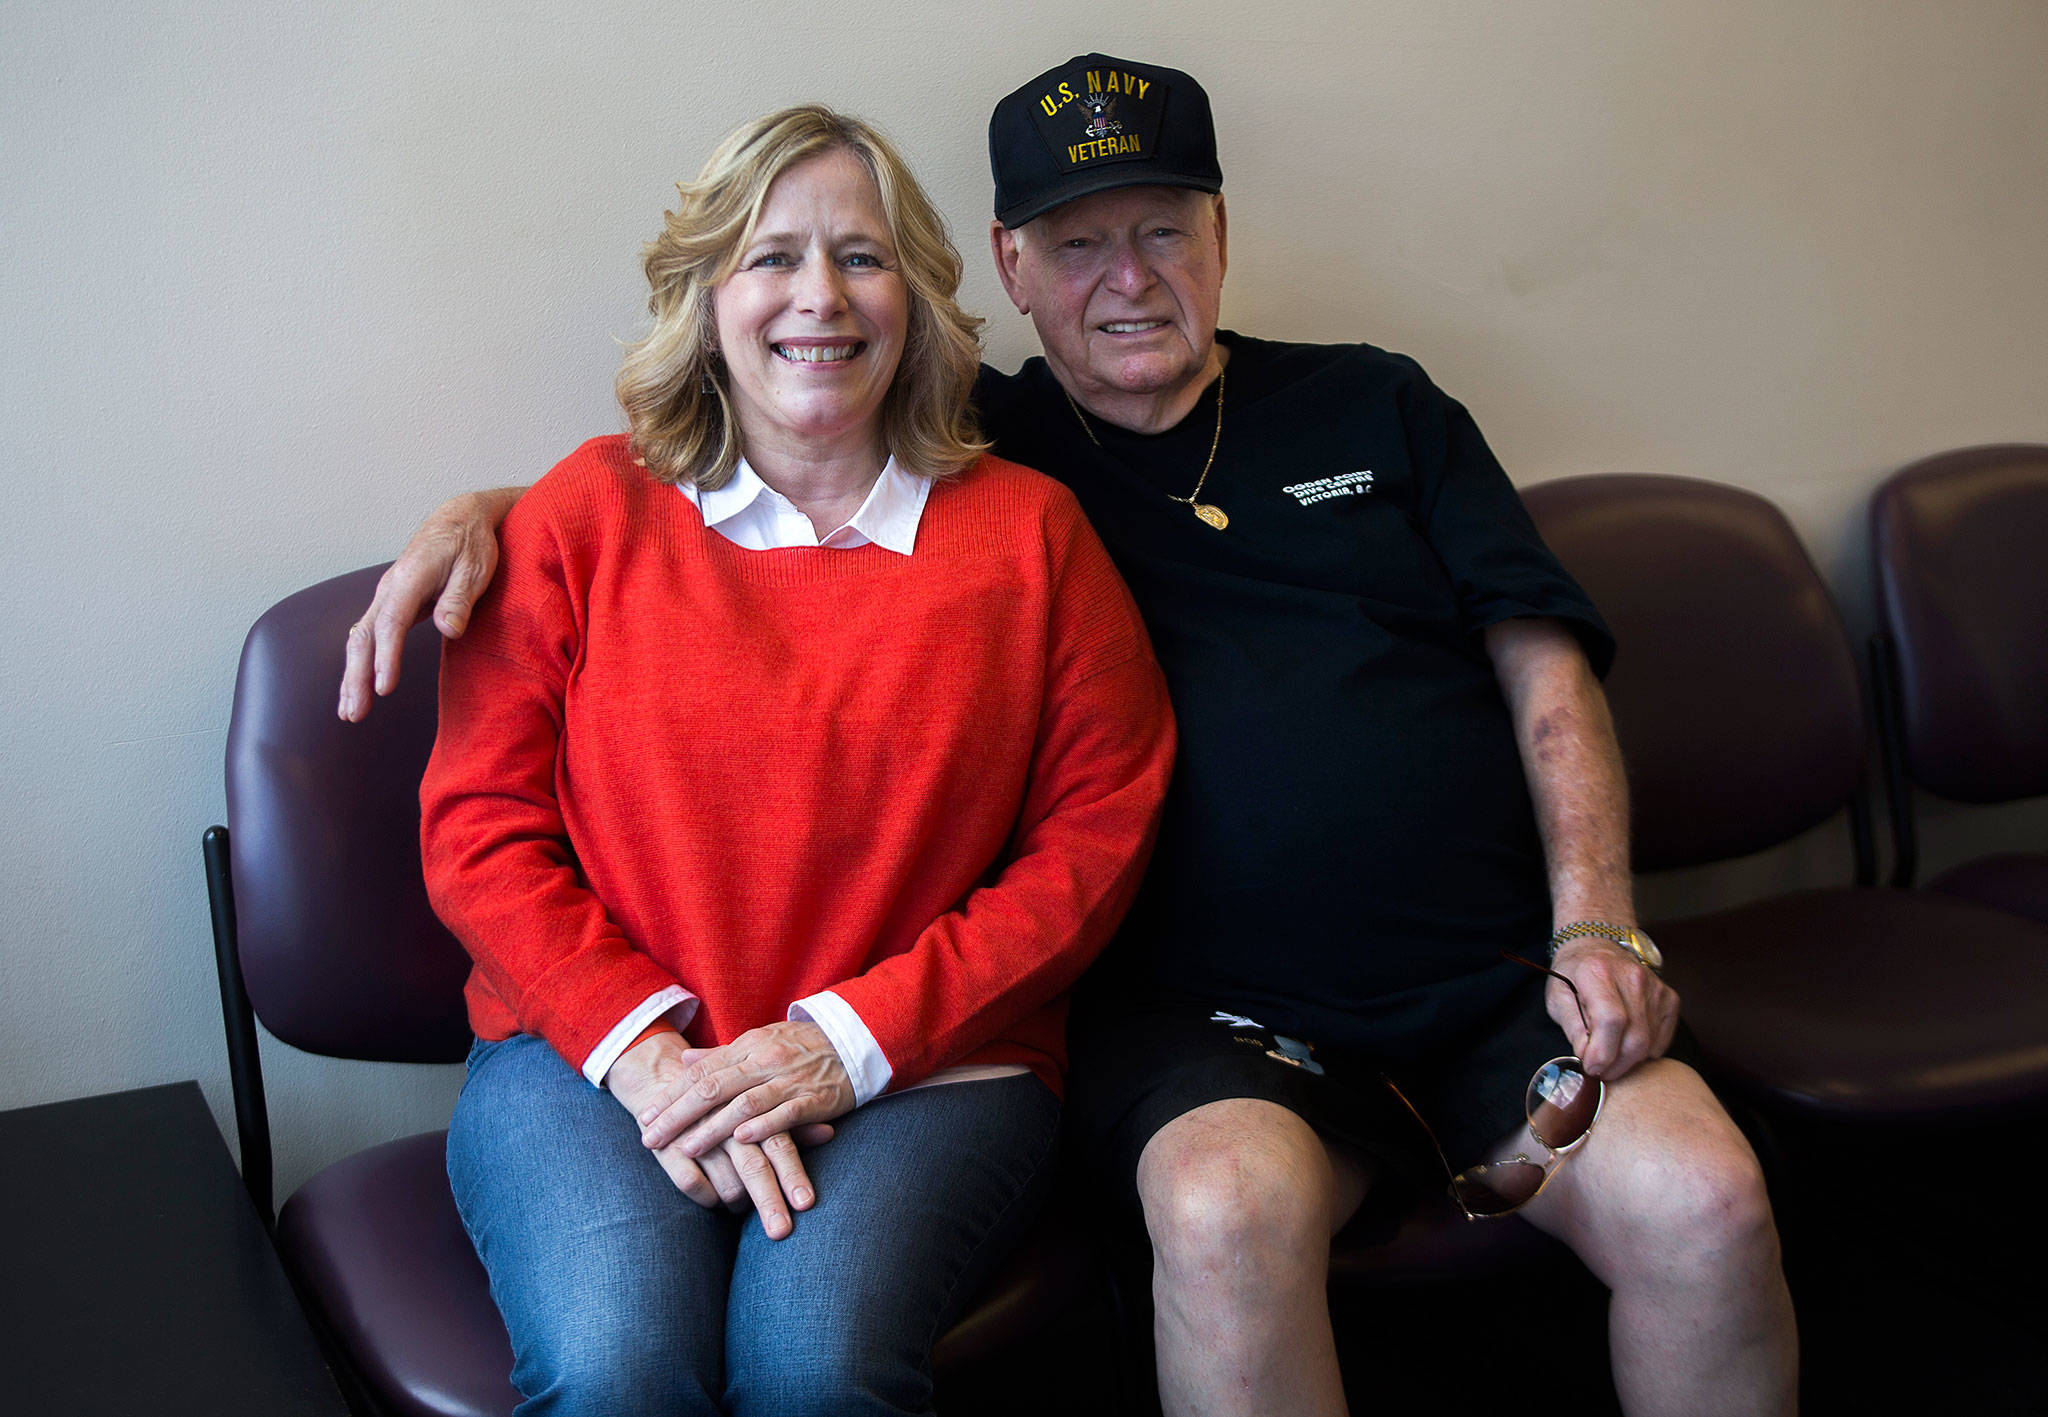 After being connected through home DNA tests through a relative, Lorna Fischer, 54, of Redmond and Bob Monize, 76, of Camano Island, went to Any Lab Test Now in Everett for a DNA paternity test. (Olivia Vanni / The Herald)